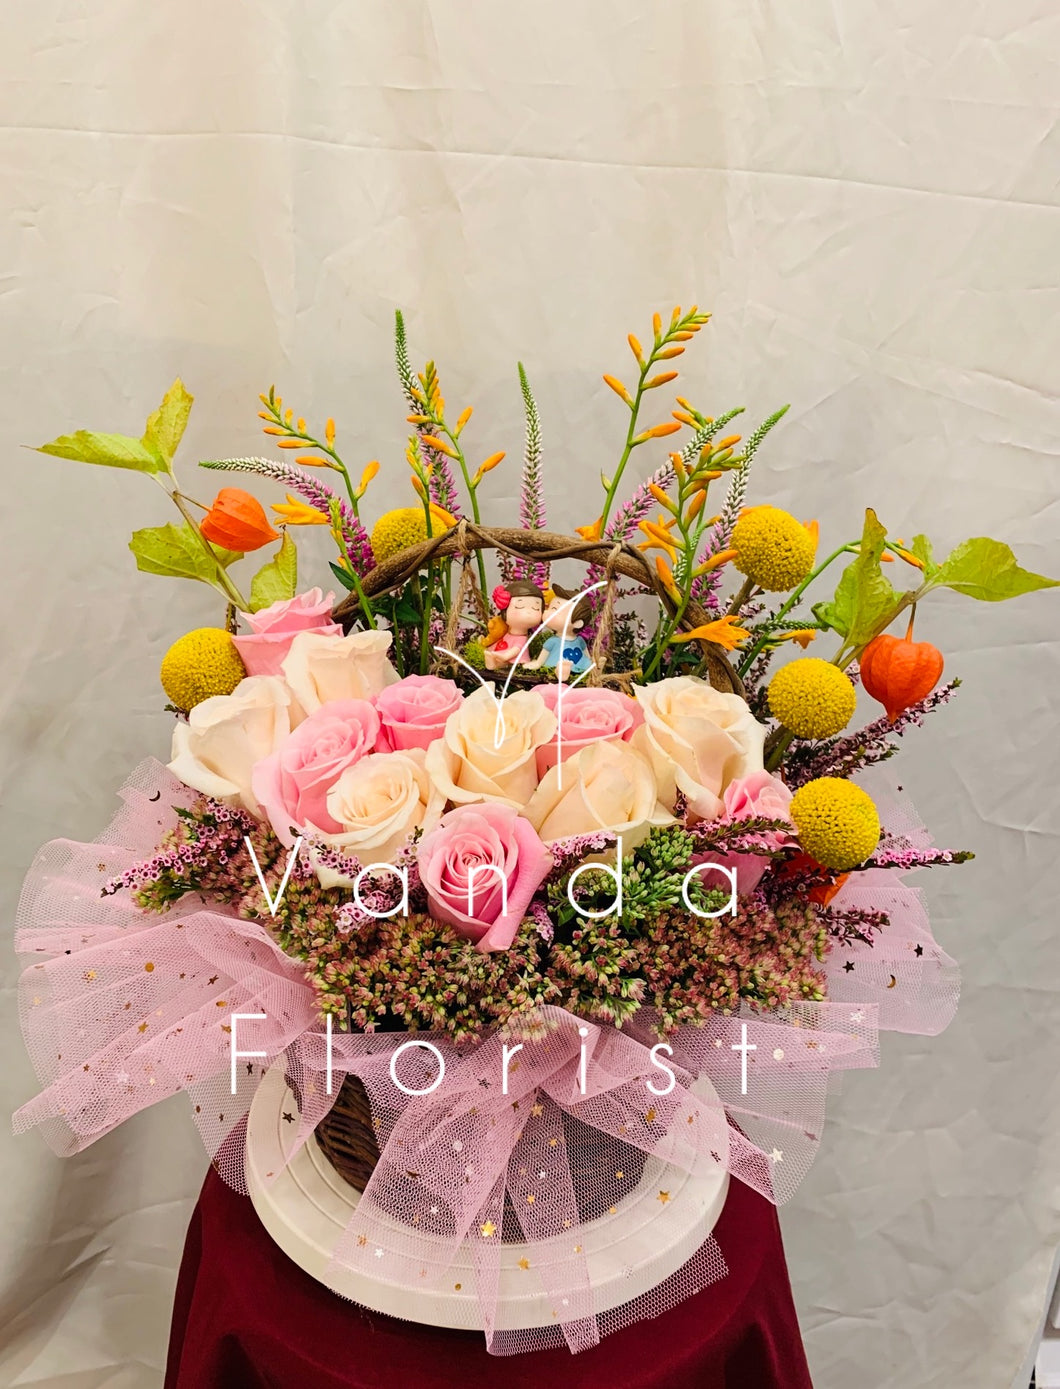 Floral Basket with Lover's Swing